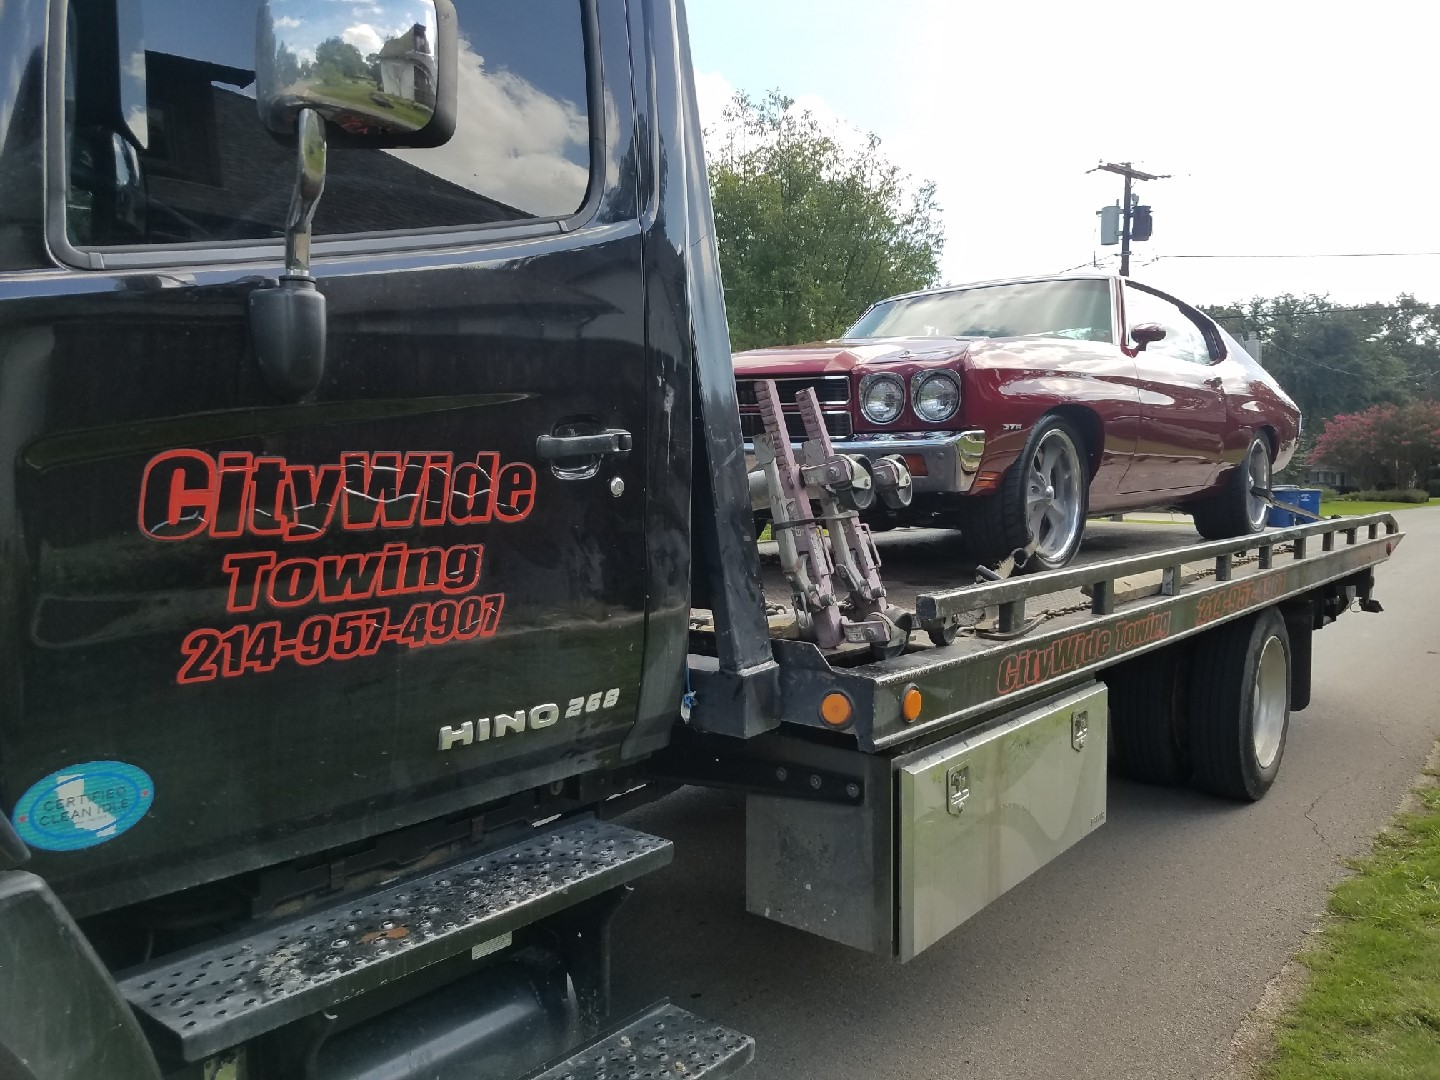 Towing 1970 Chevelle from Dallas to Lewisville, TX